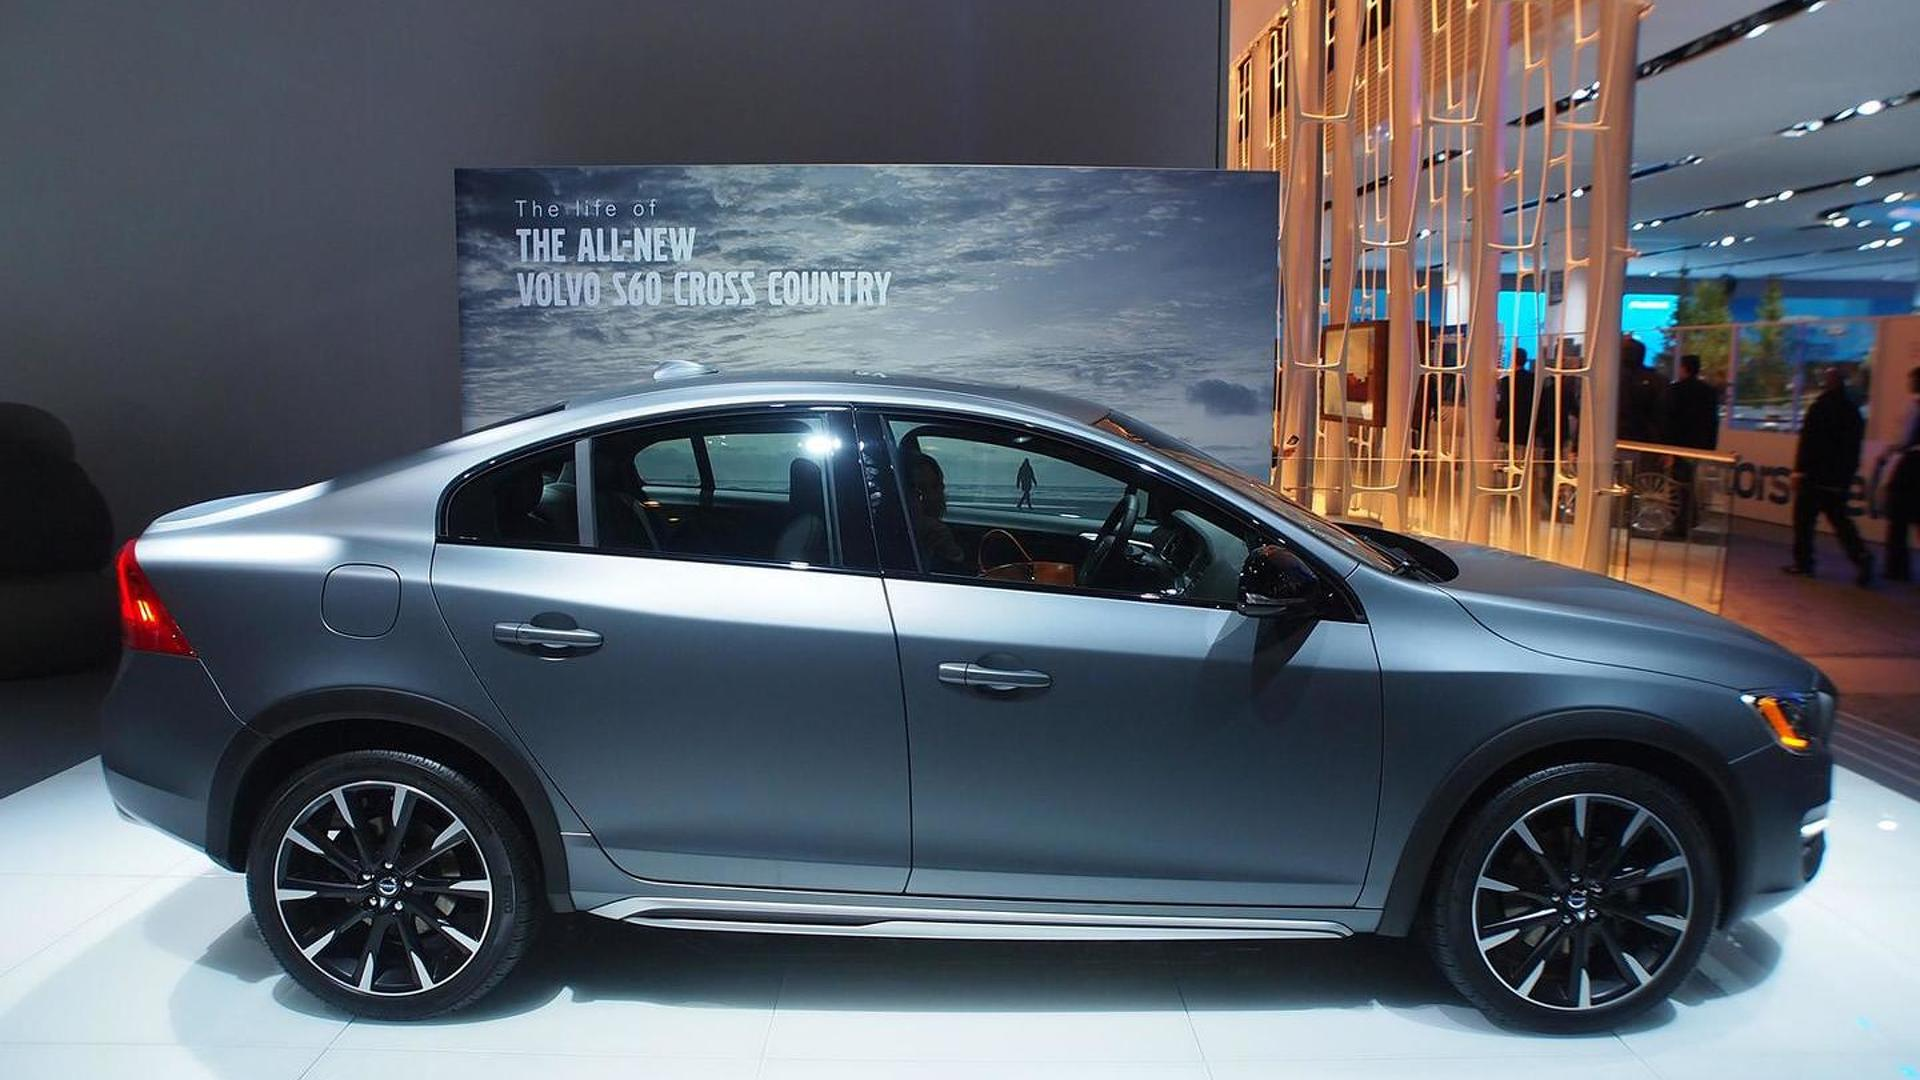 Volvo S60 Cross Country >> Volvo S60 Cross Country Makes World Debut In Detroit